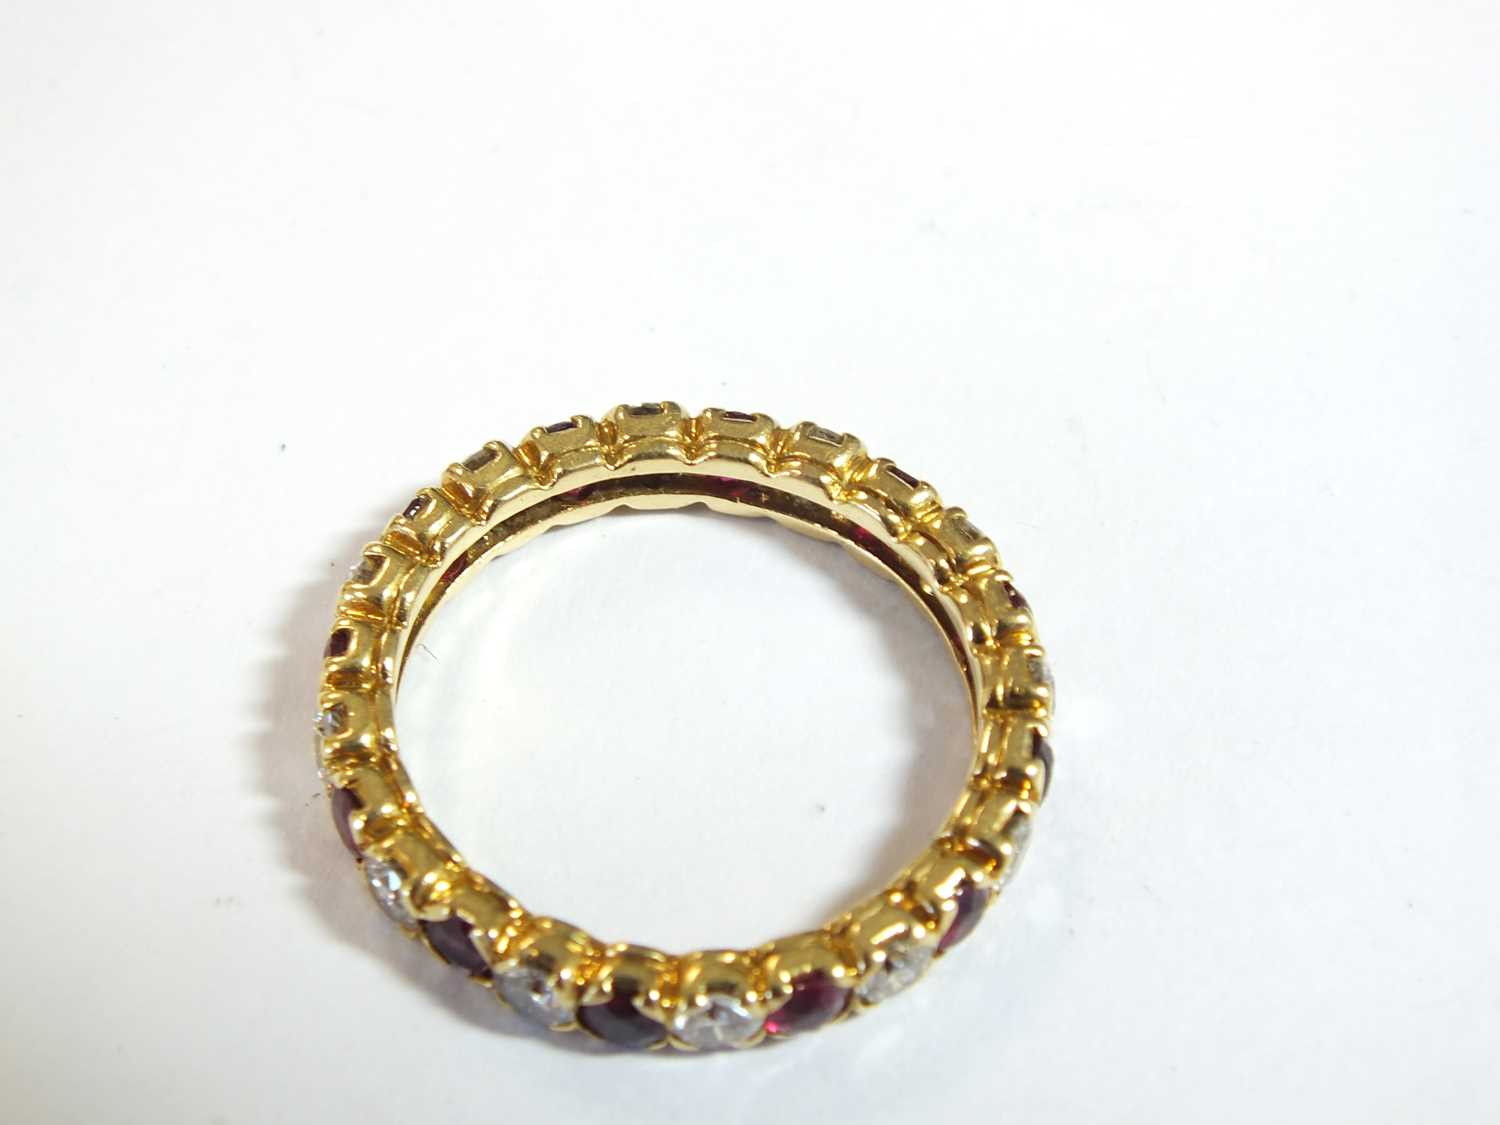 An 18ct gold ruby and diamond full eternity ring by Boucheron - Image 4 of 8